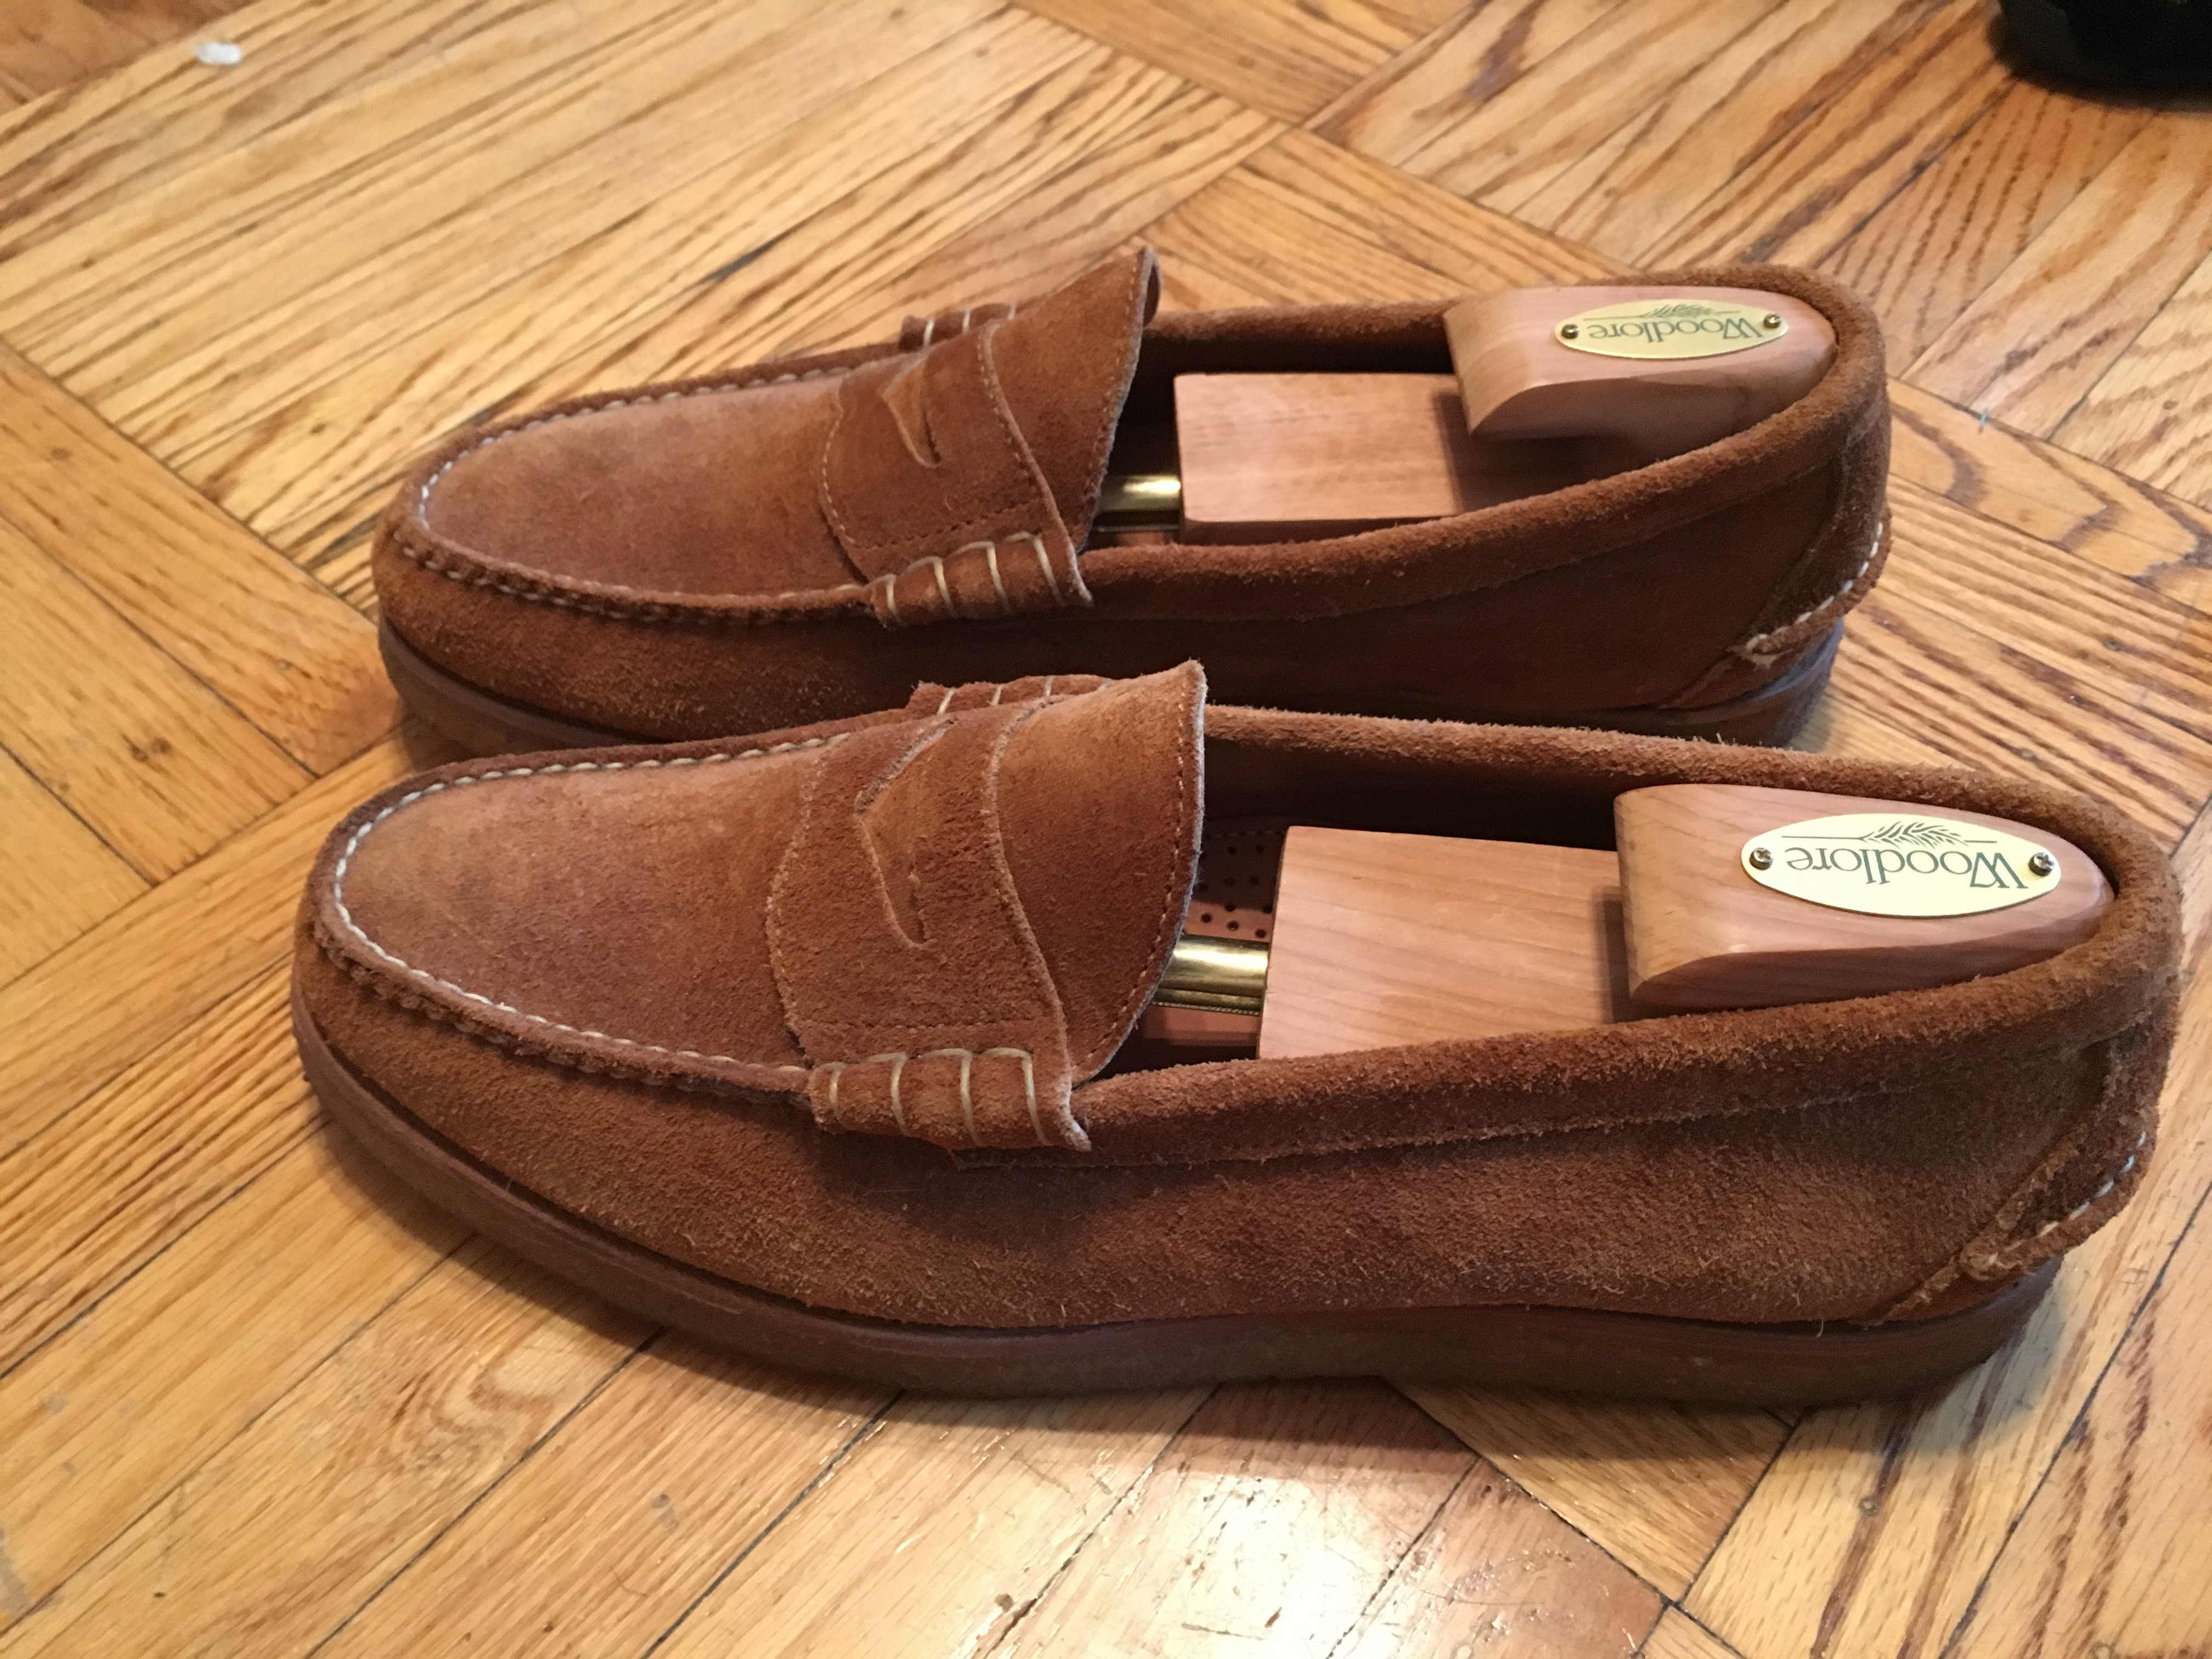 9a21bd44d98 Oak Street Bootmakers BEEFROLL PENNY LOAFER PEANUT SUEDE CREPE SOLE Size 11  - Casual Leather Shoes for Sale - Grailed